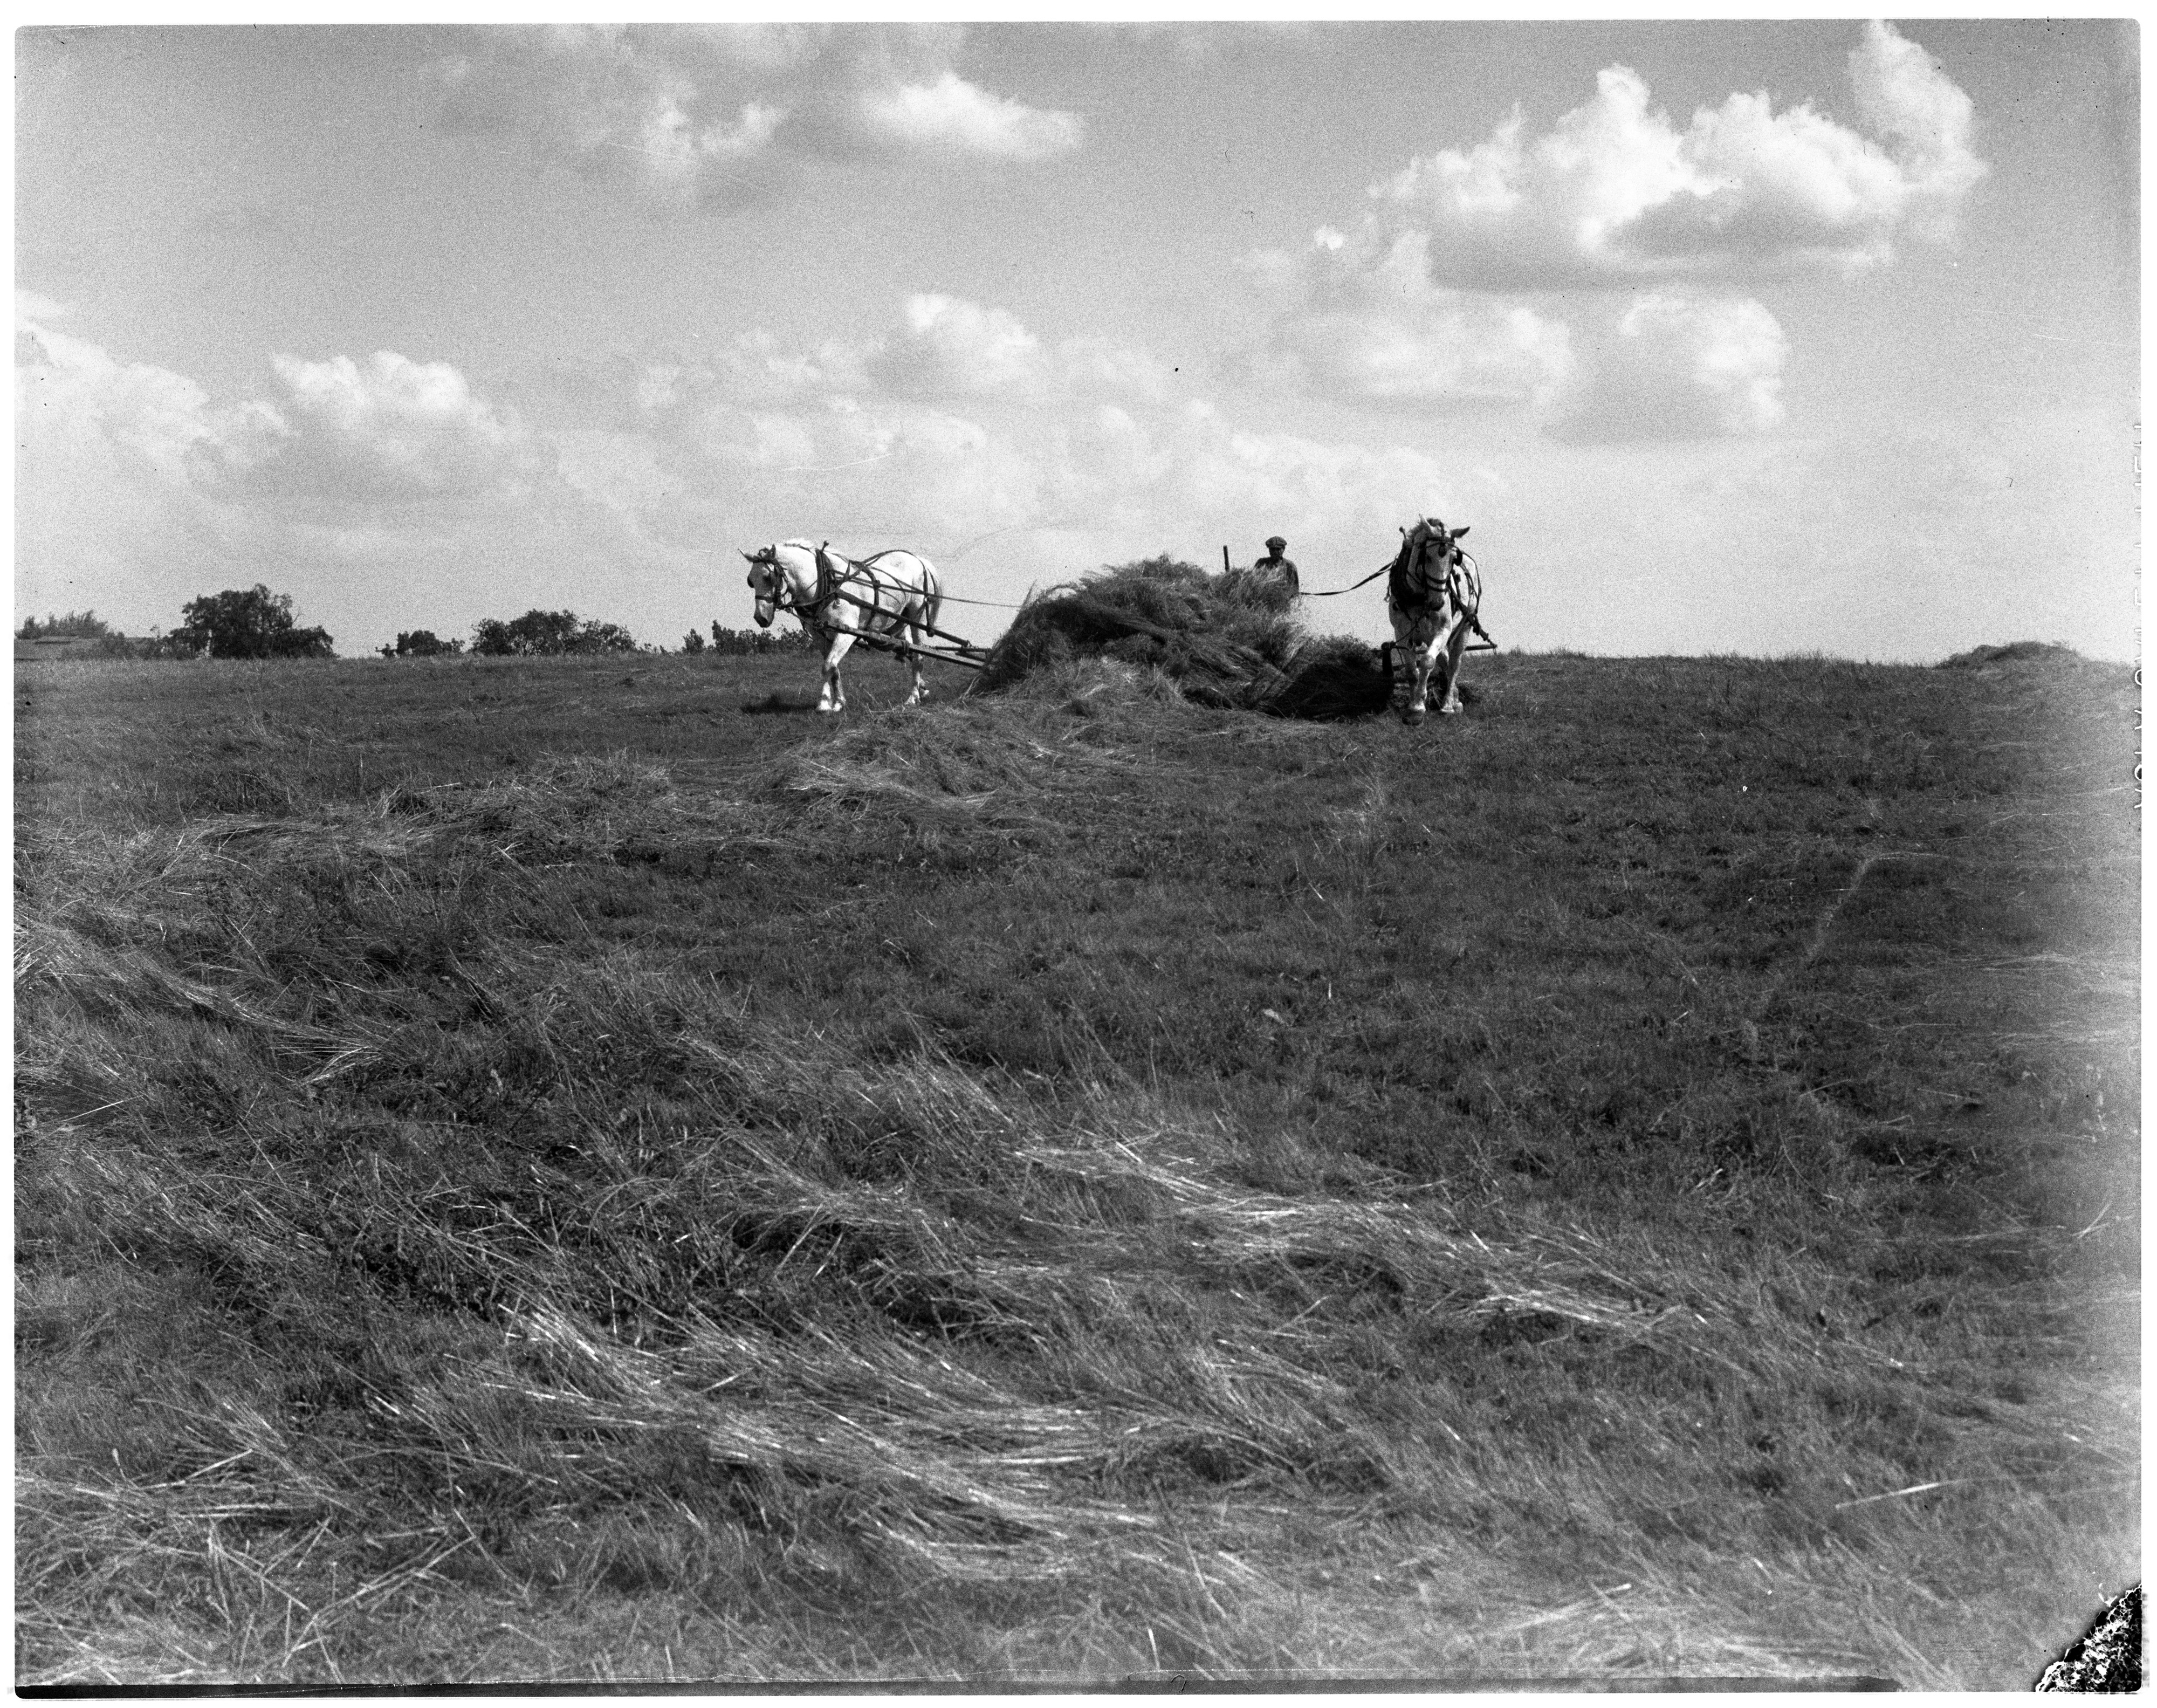 Cutting Hay on the Dhu Varren Farm, Whitmore Lake Rd, 1935 image